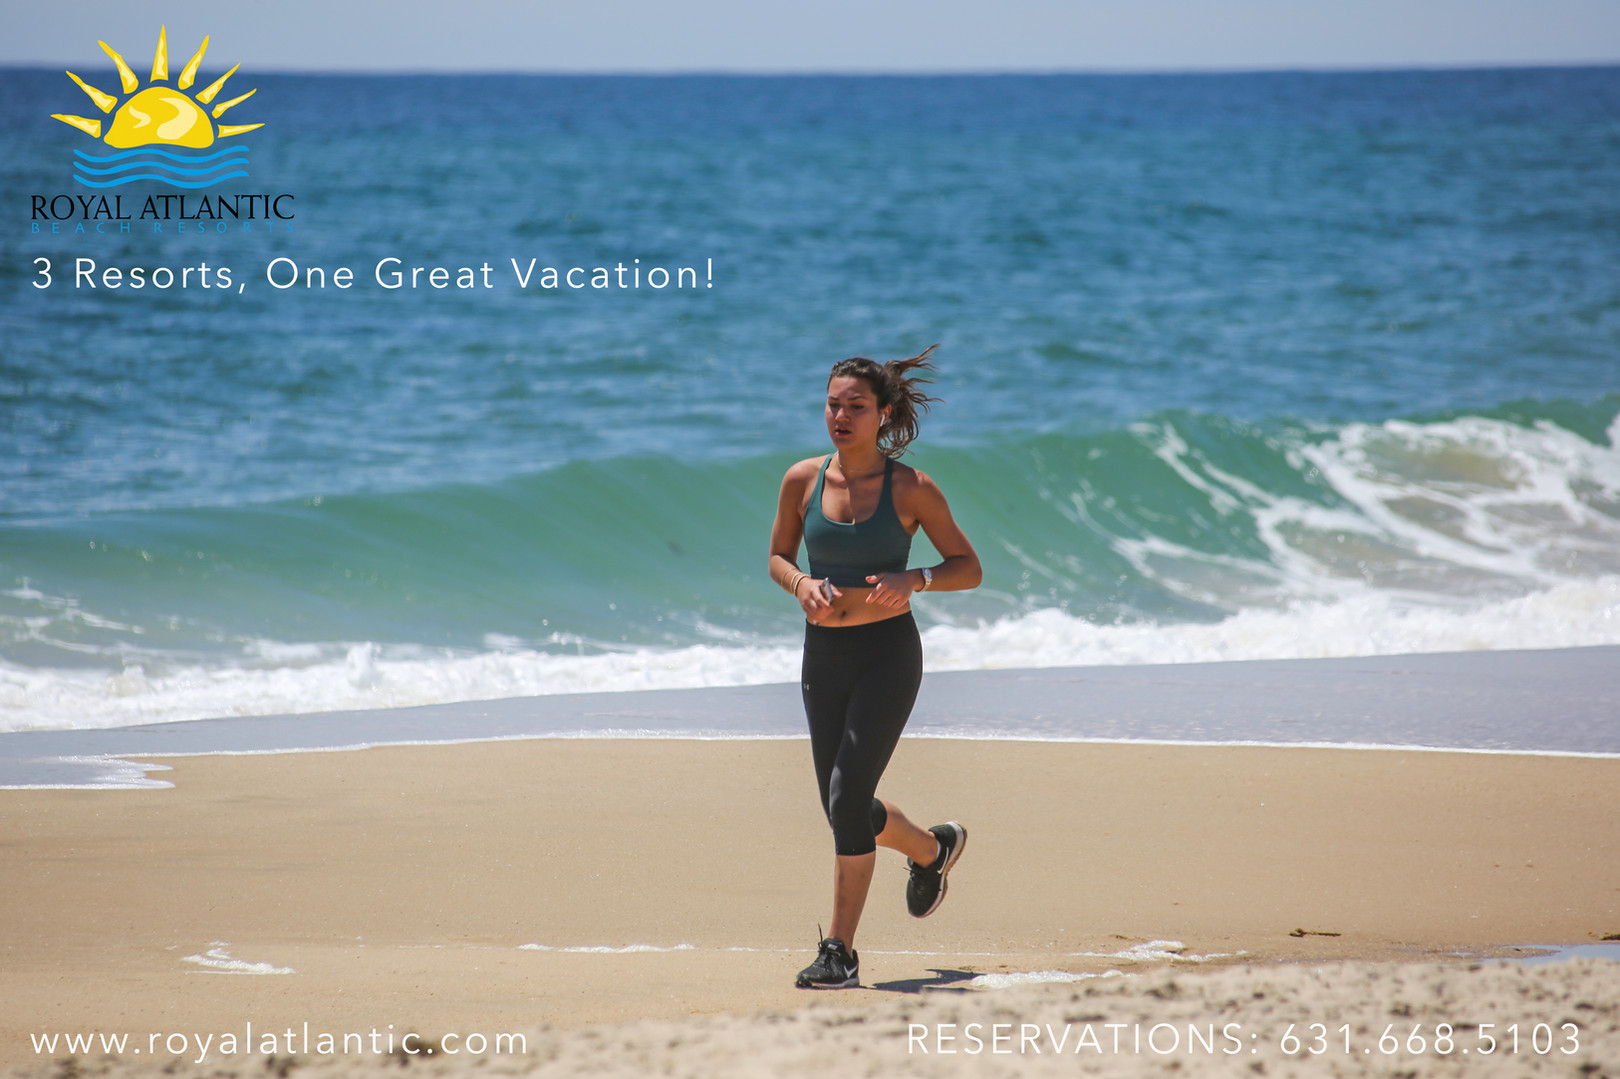 Lady Jogging-Beach-05122020.jpg